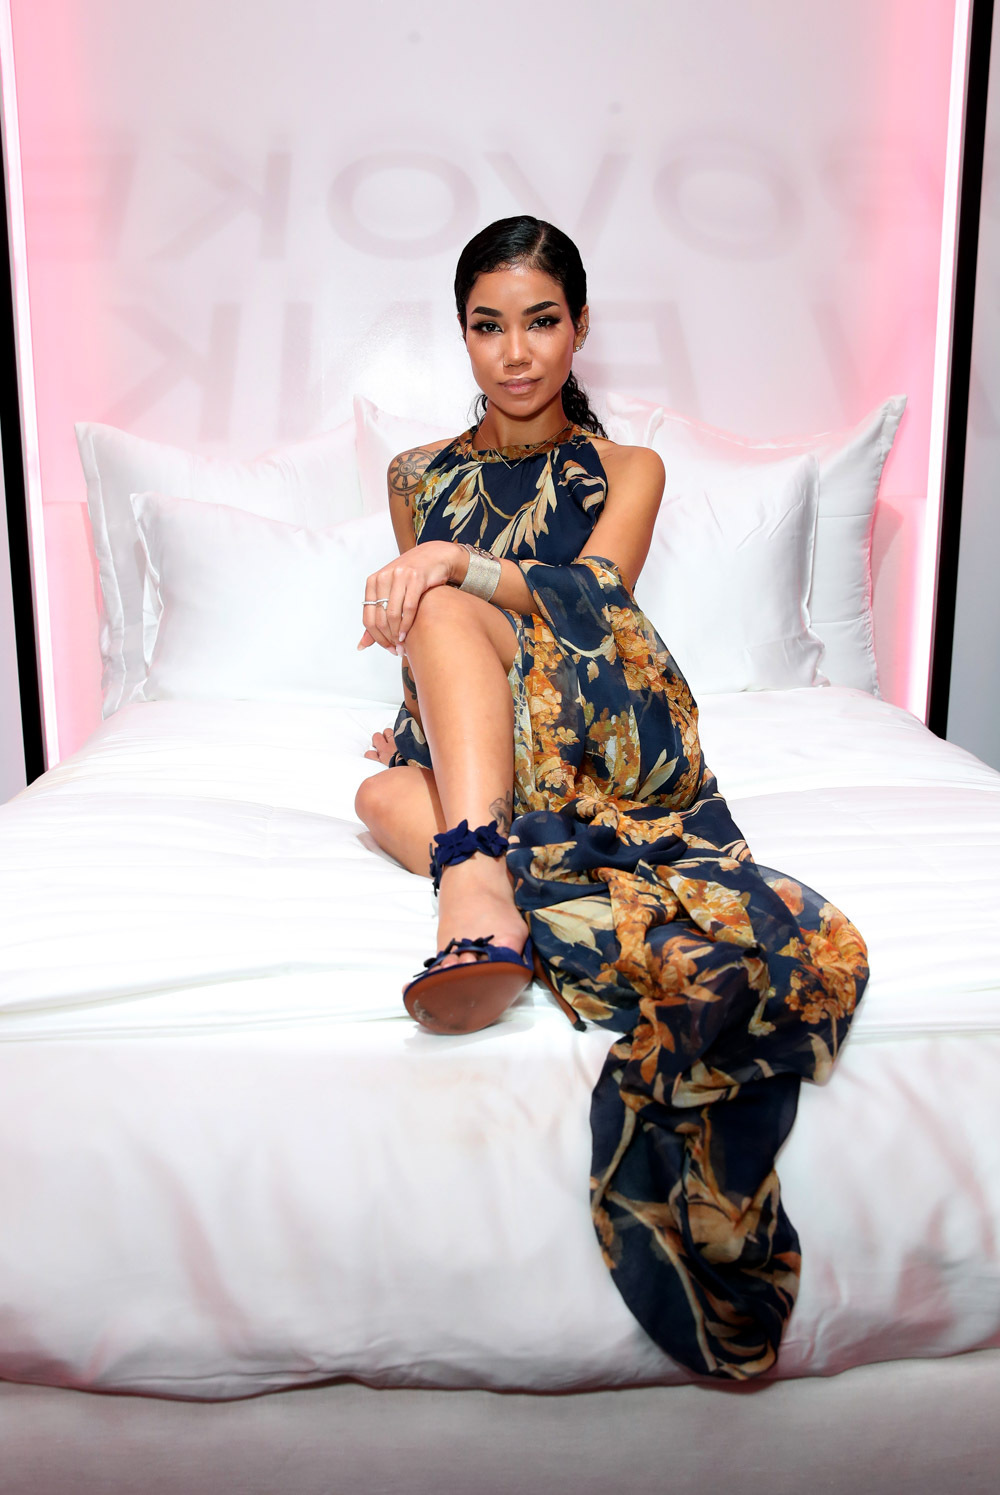 Jhene Aiko: 5 Things To Know About Big Seans GF Amid Cheating Scandal